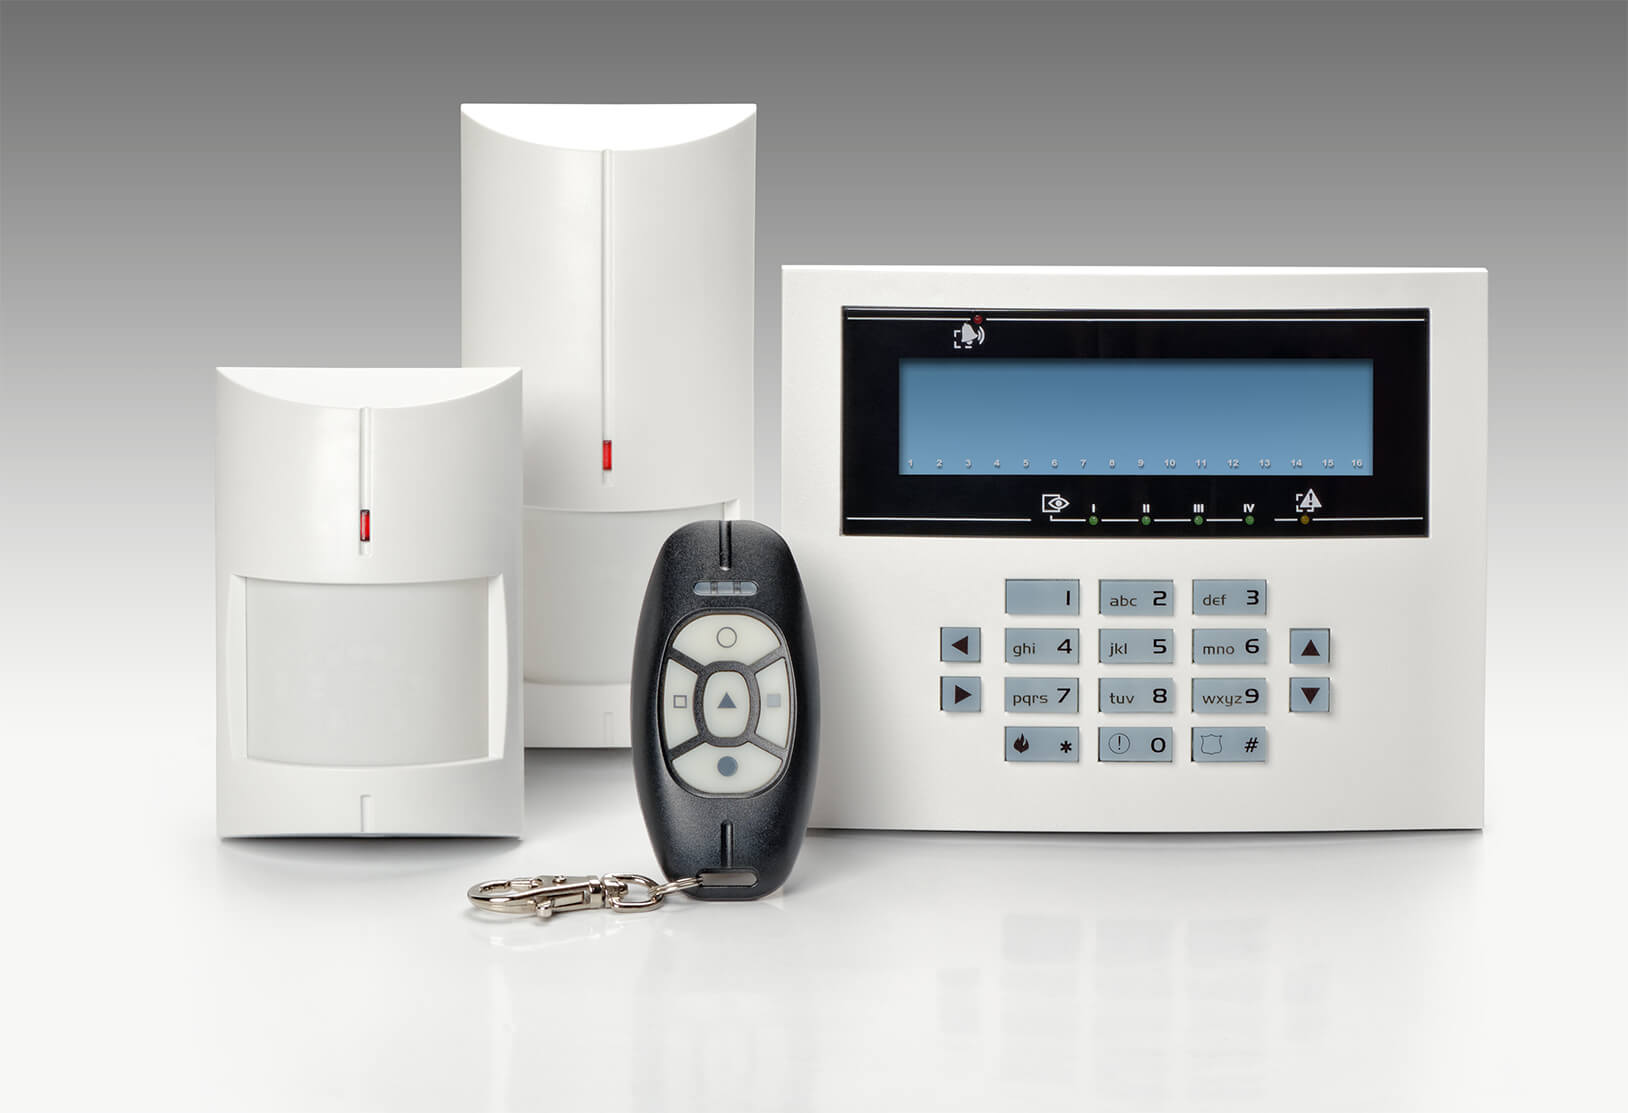 Burglar Alarms Repair in Lambeth SE25 - Local Lambeth SE25 alarm engineers.Call 02078872244 - See cost/price for burglar alarm repair and book your alarm engineer. No Hidden charges,No Contracts, Book as you need.Engineers on demand.All alarm makes repaired.Same day service ability.